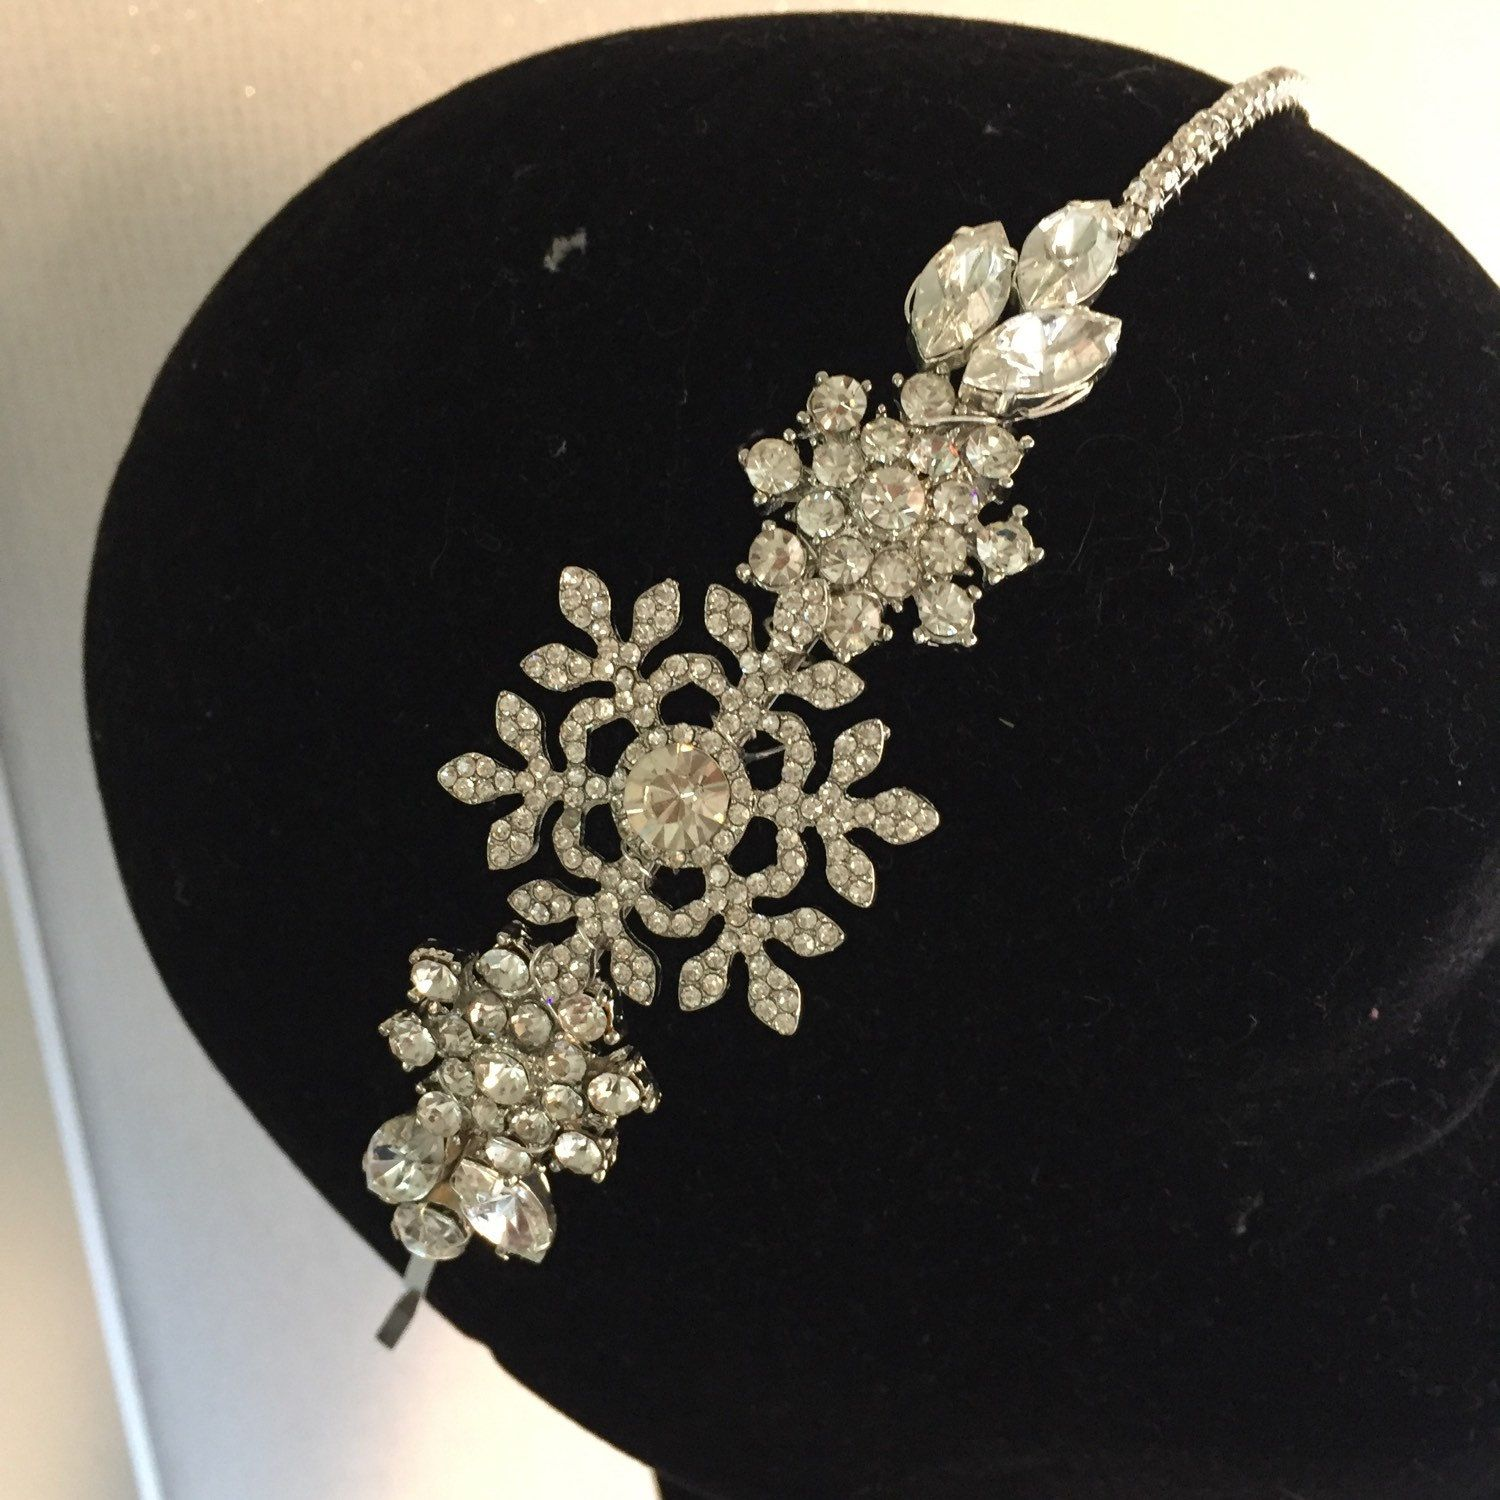 snowflake headpiece wedding headdress diamante tiara crystal headband side  tiara 35288bbd8f6